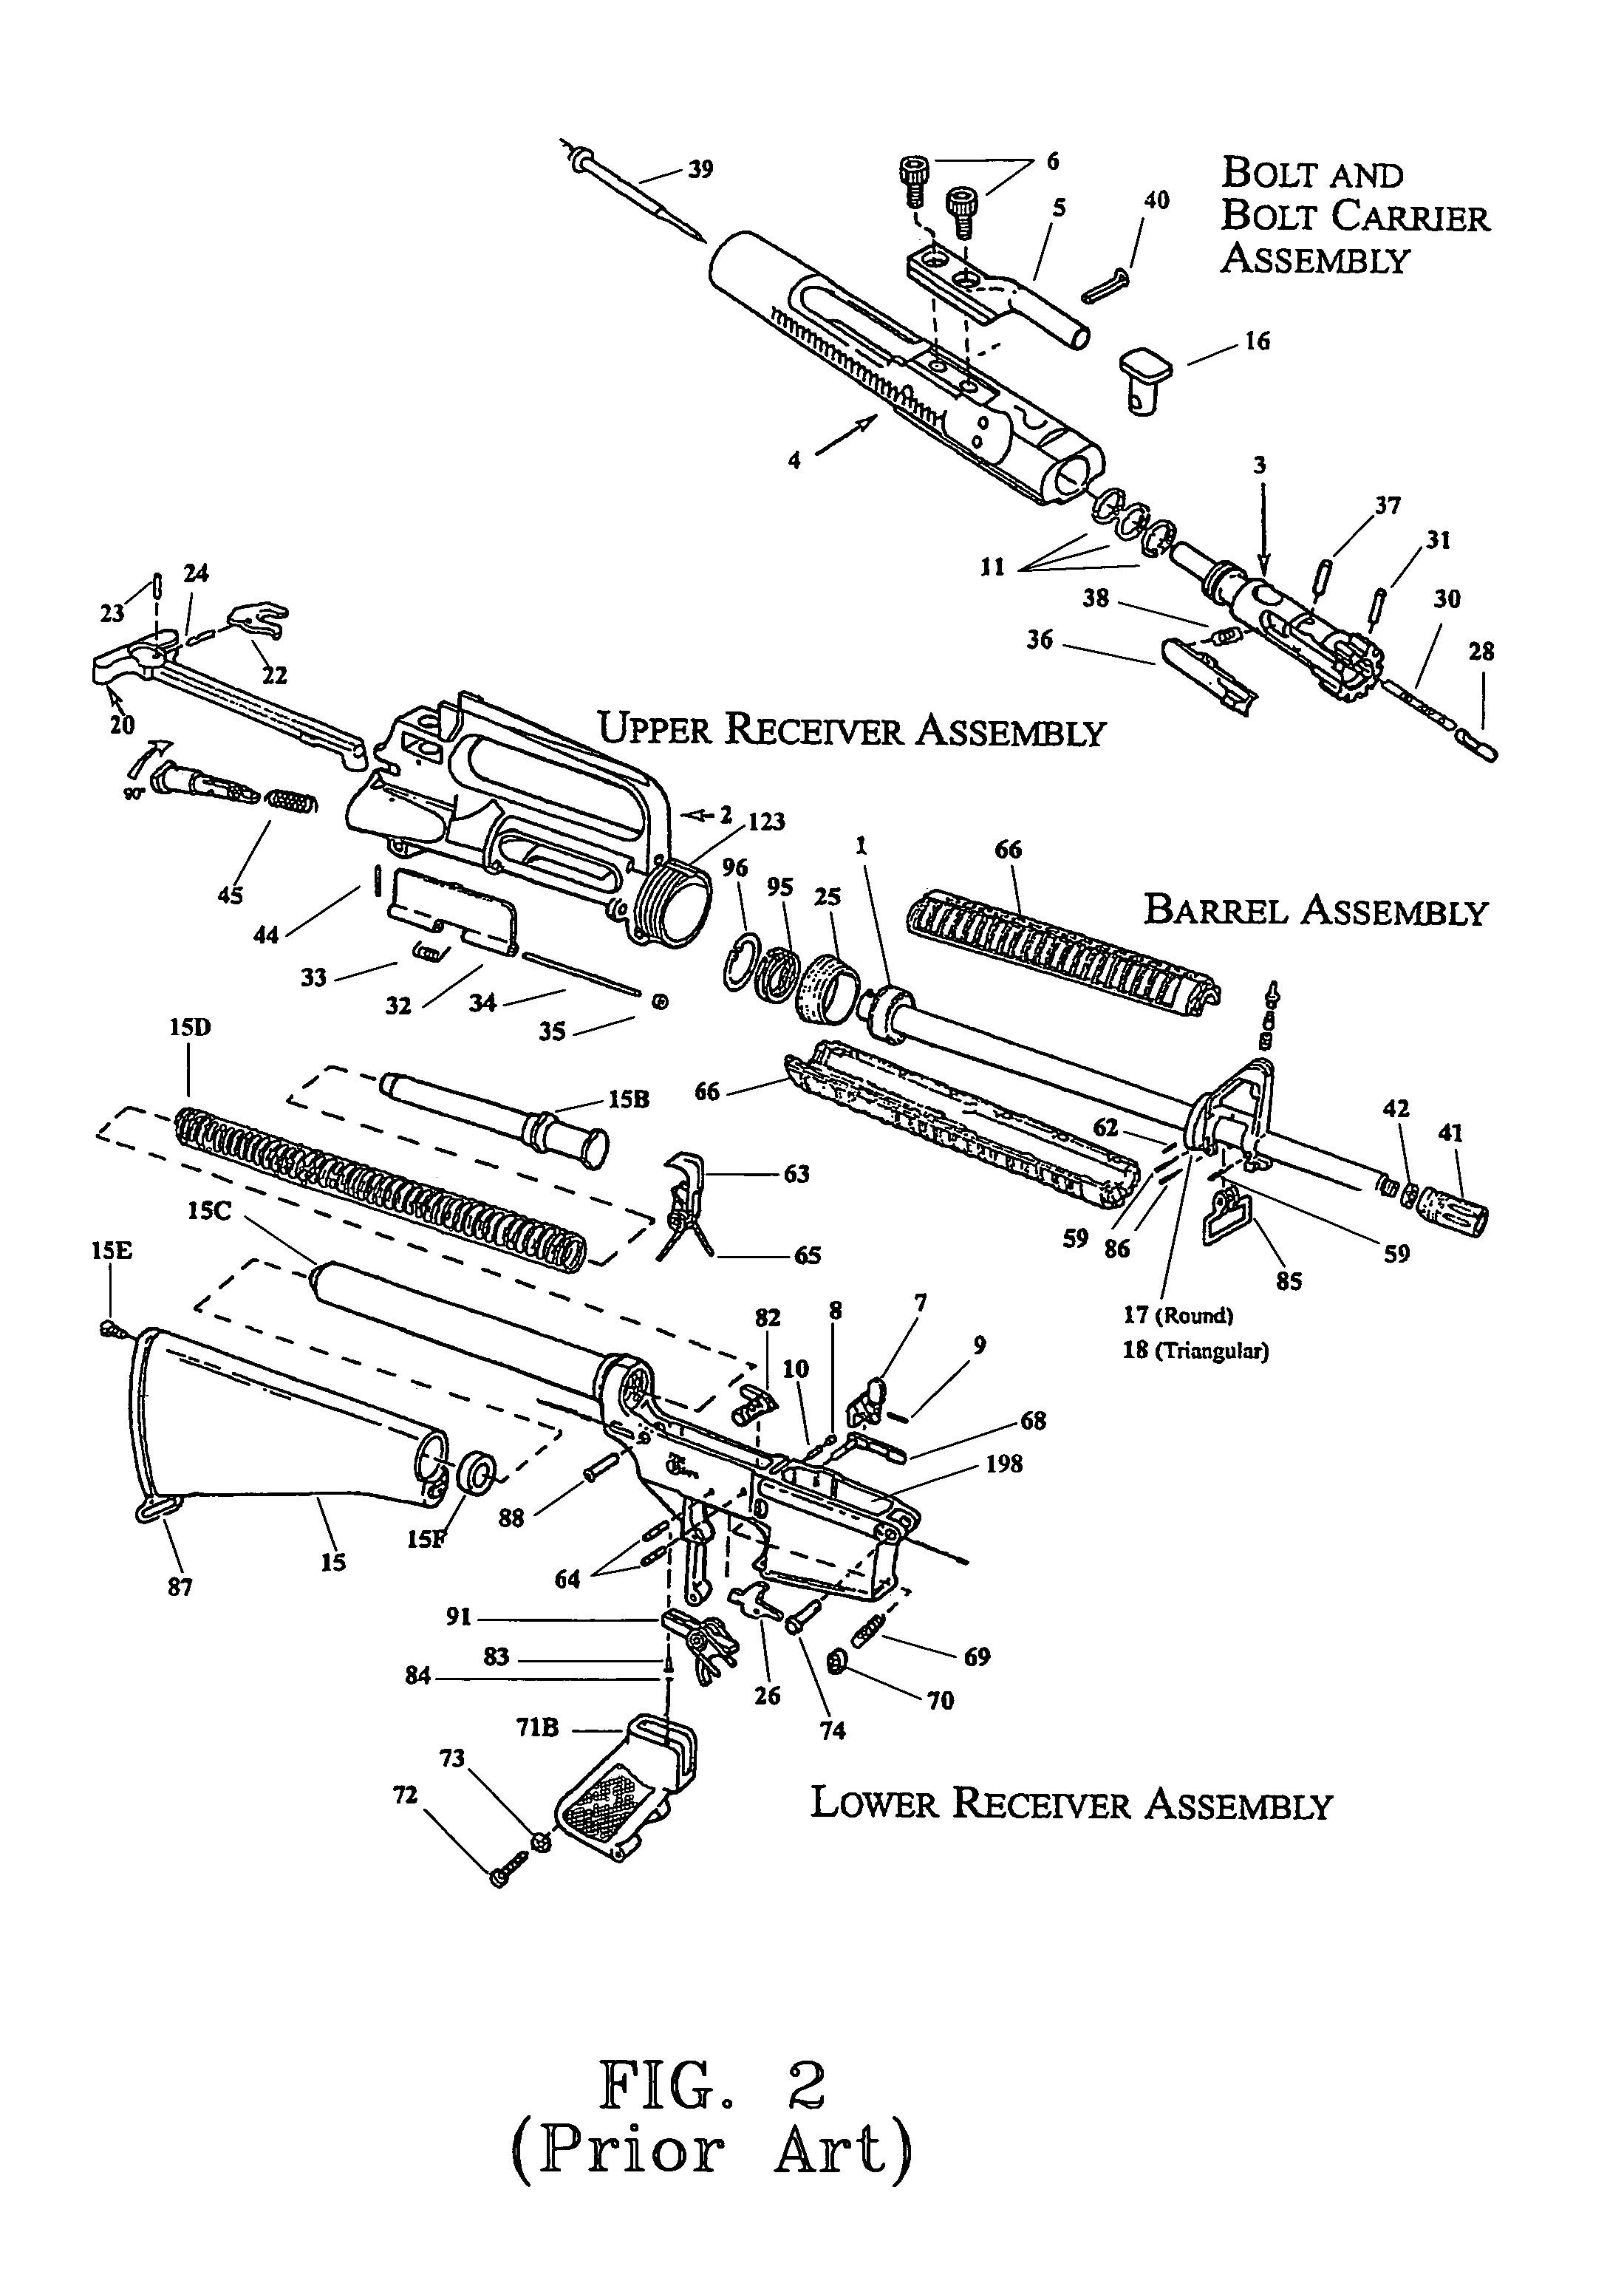 medium resolution of ar 15 upper receiver exploded view diagram guns m4 carbine gunsar 15 upper receiver exploded